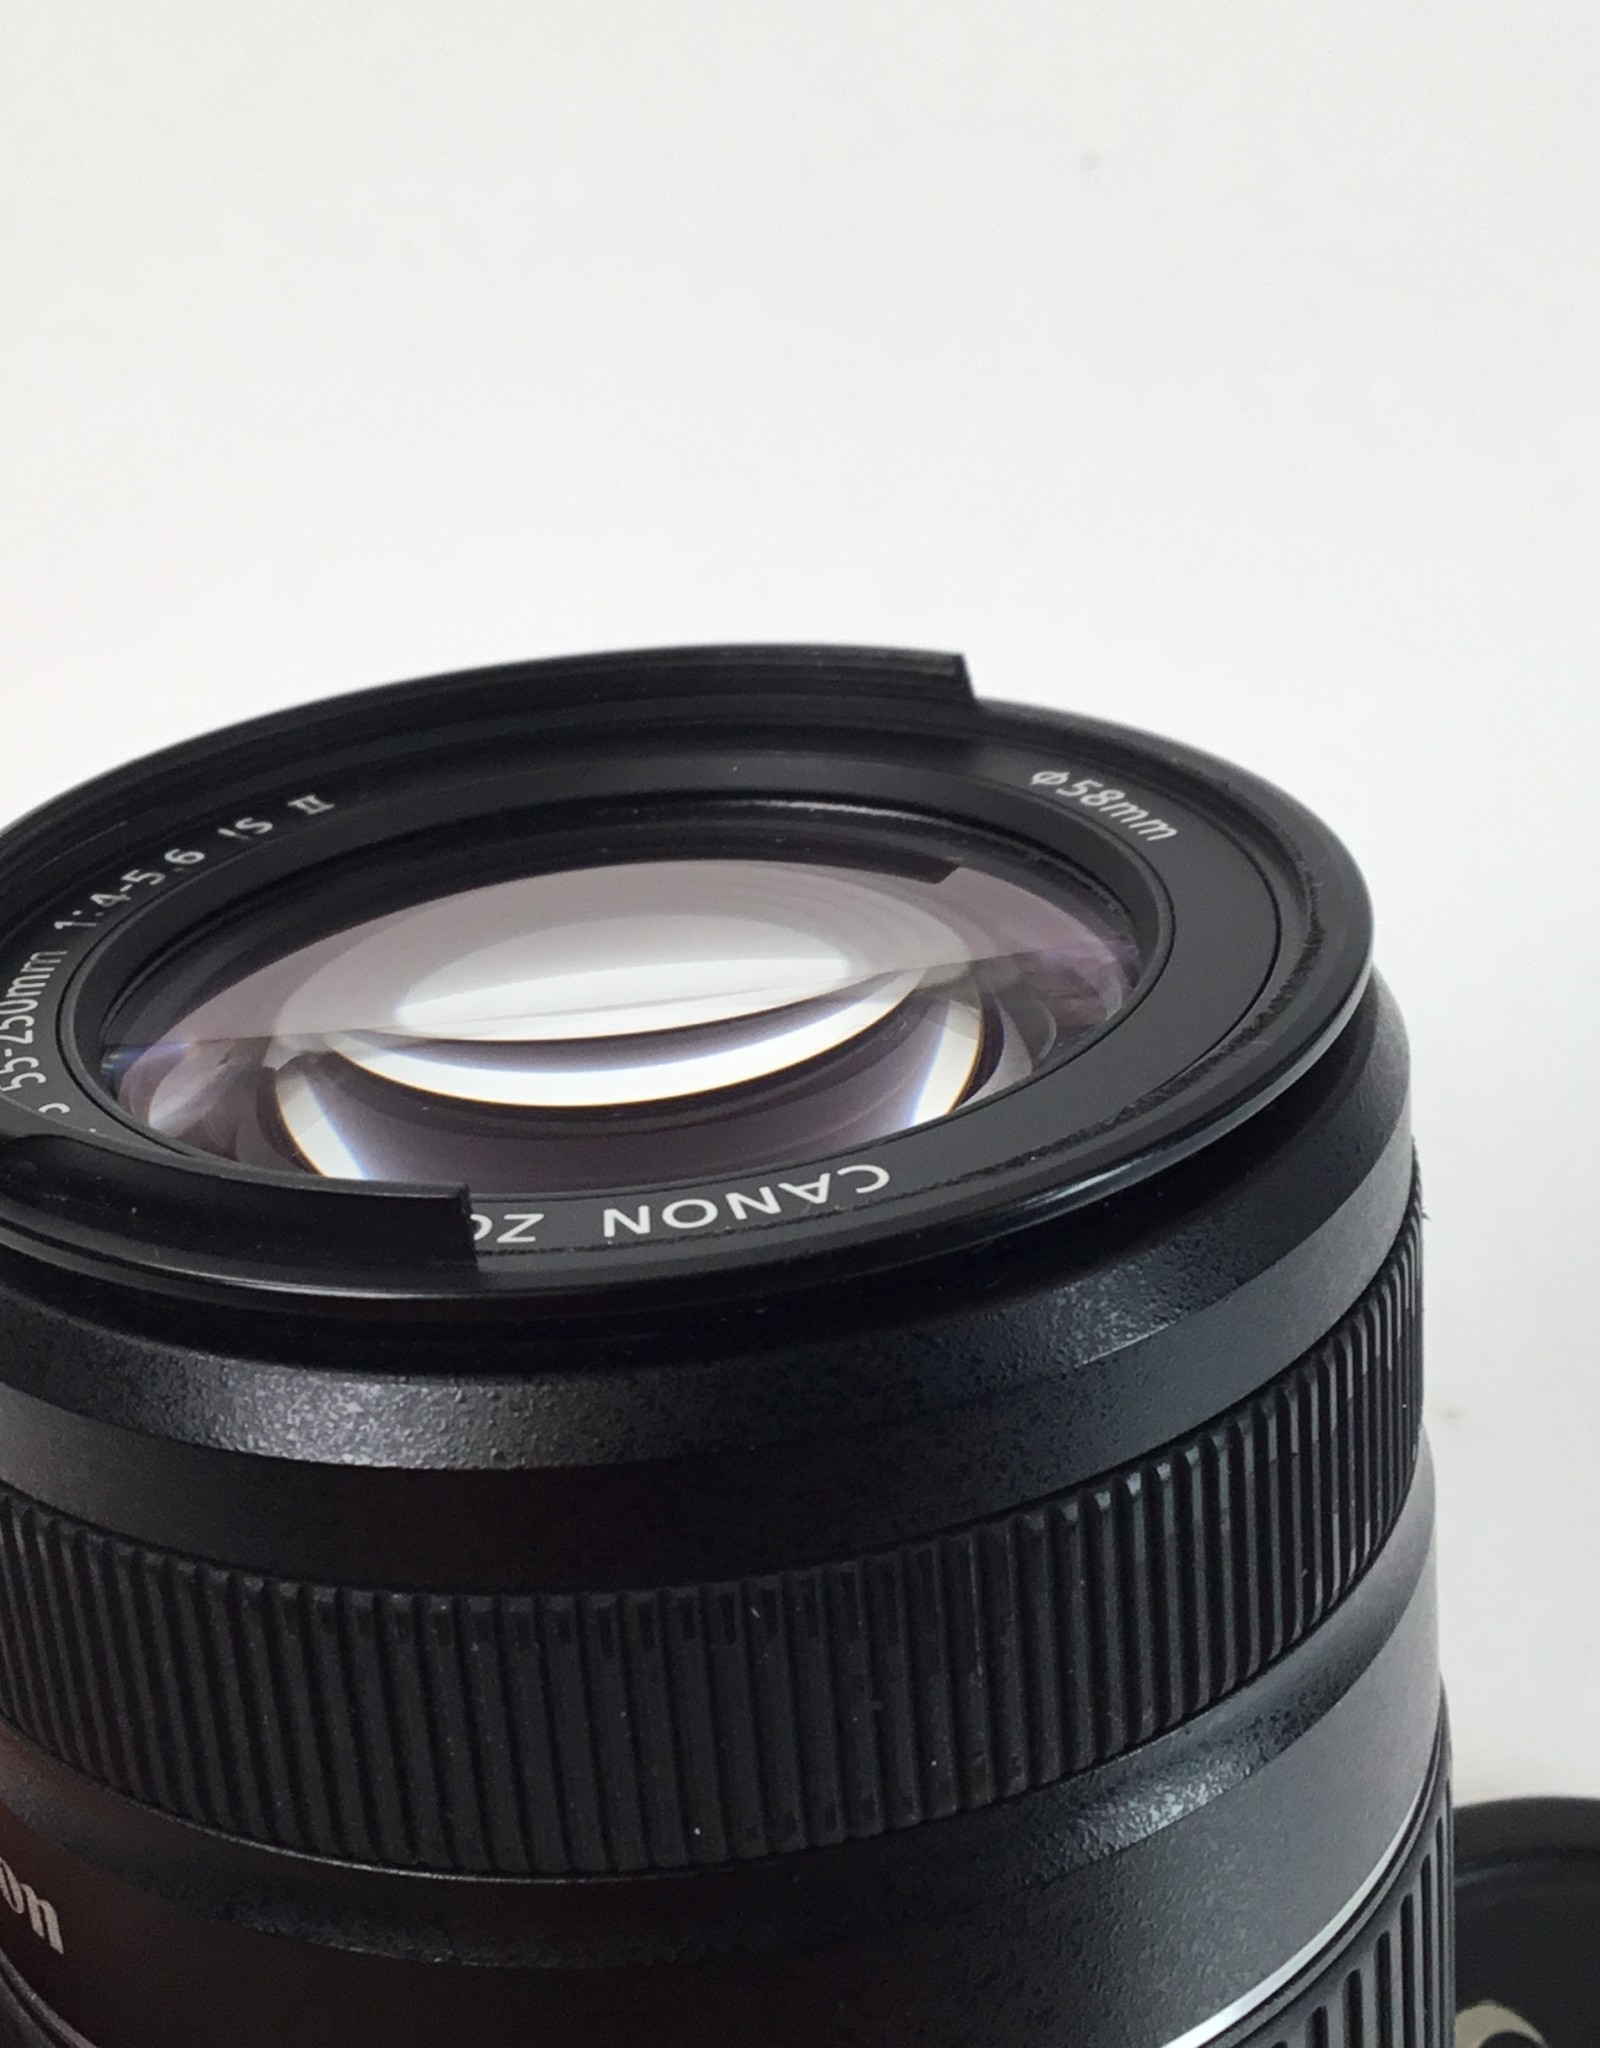 CANON Canon EF-S 55-250mm IS II Broken Filter Ring Used BGN